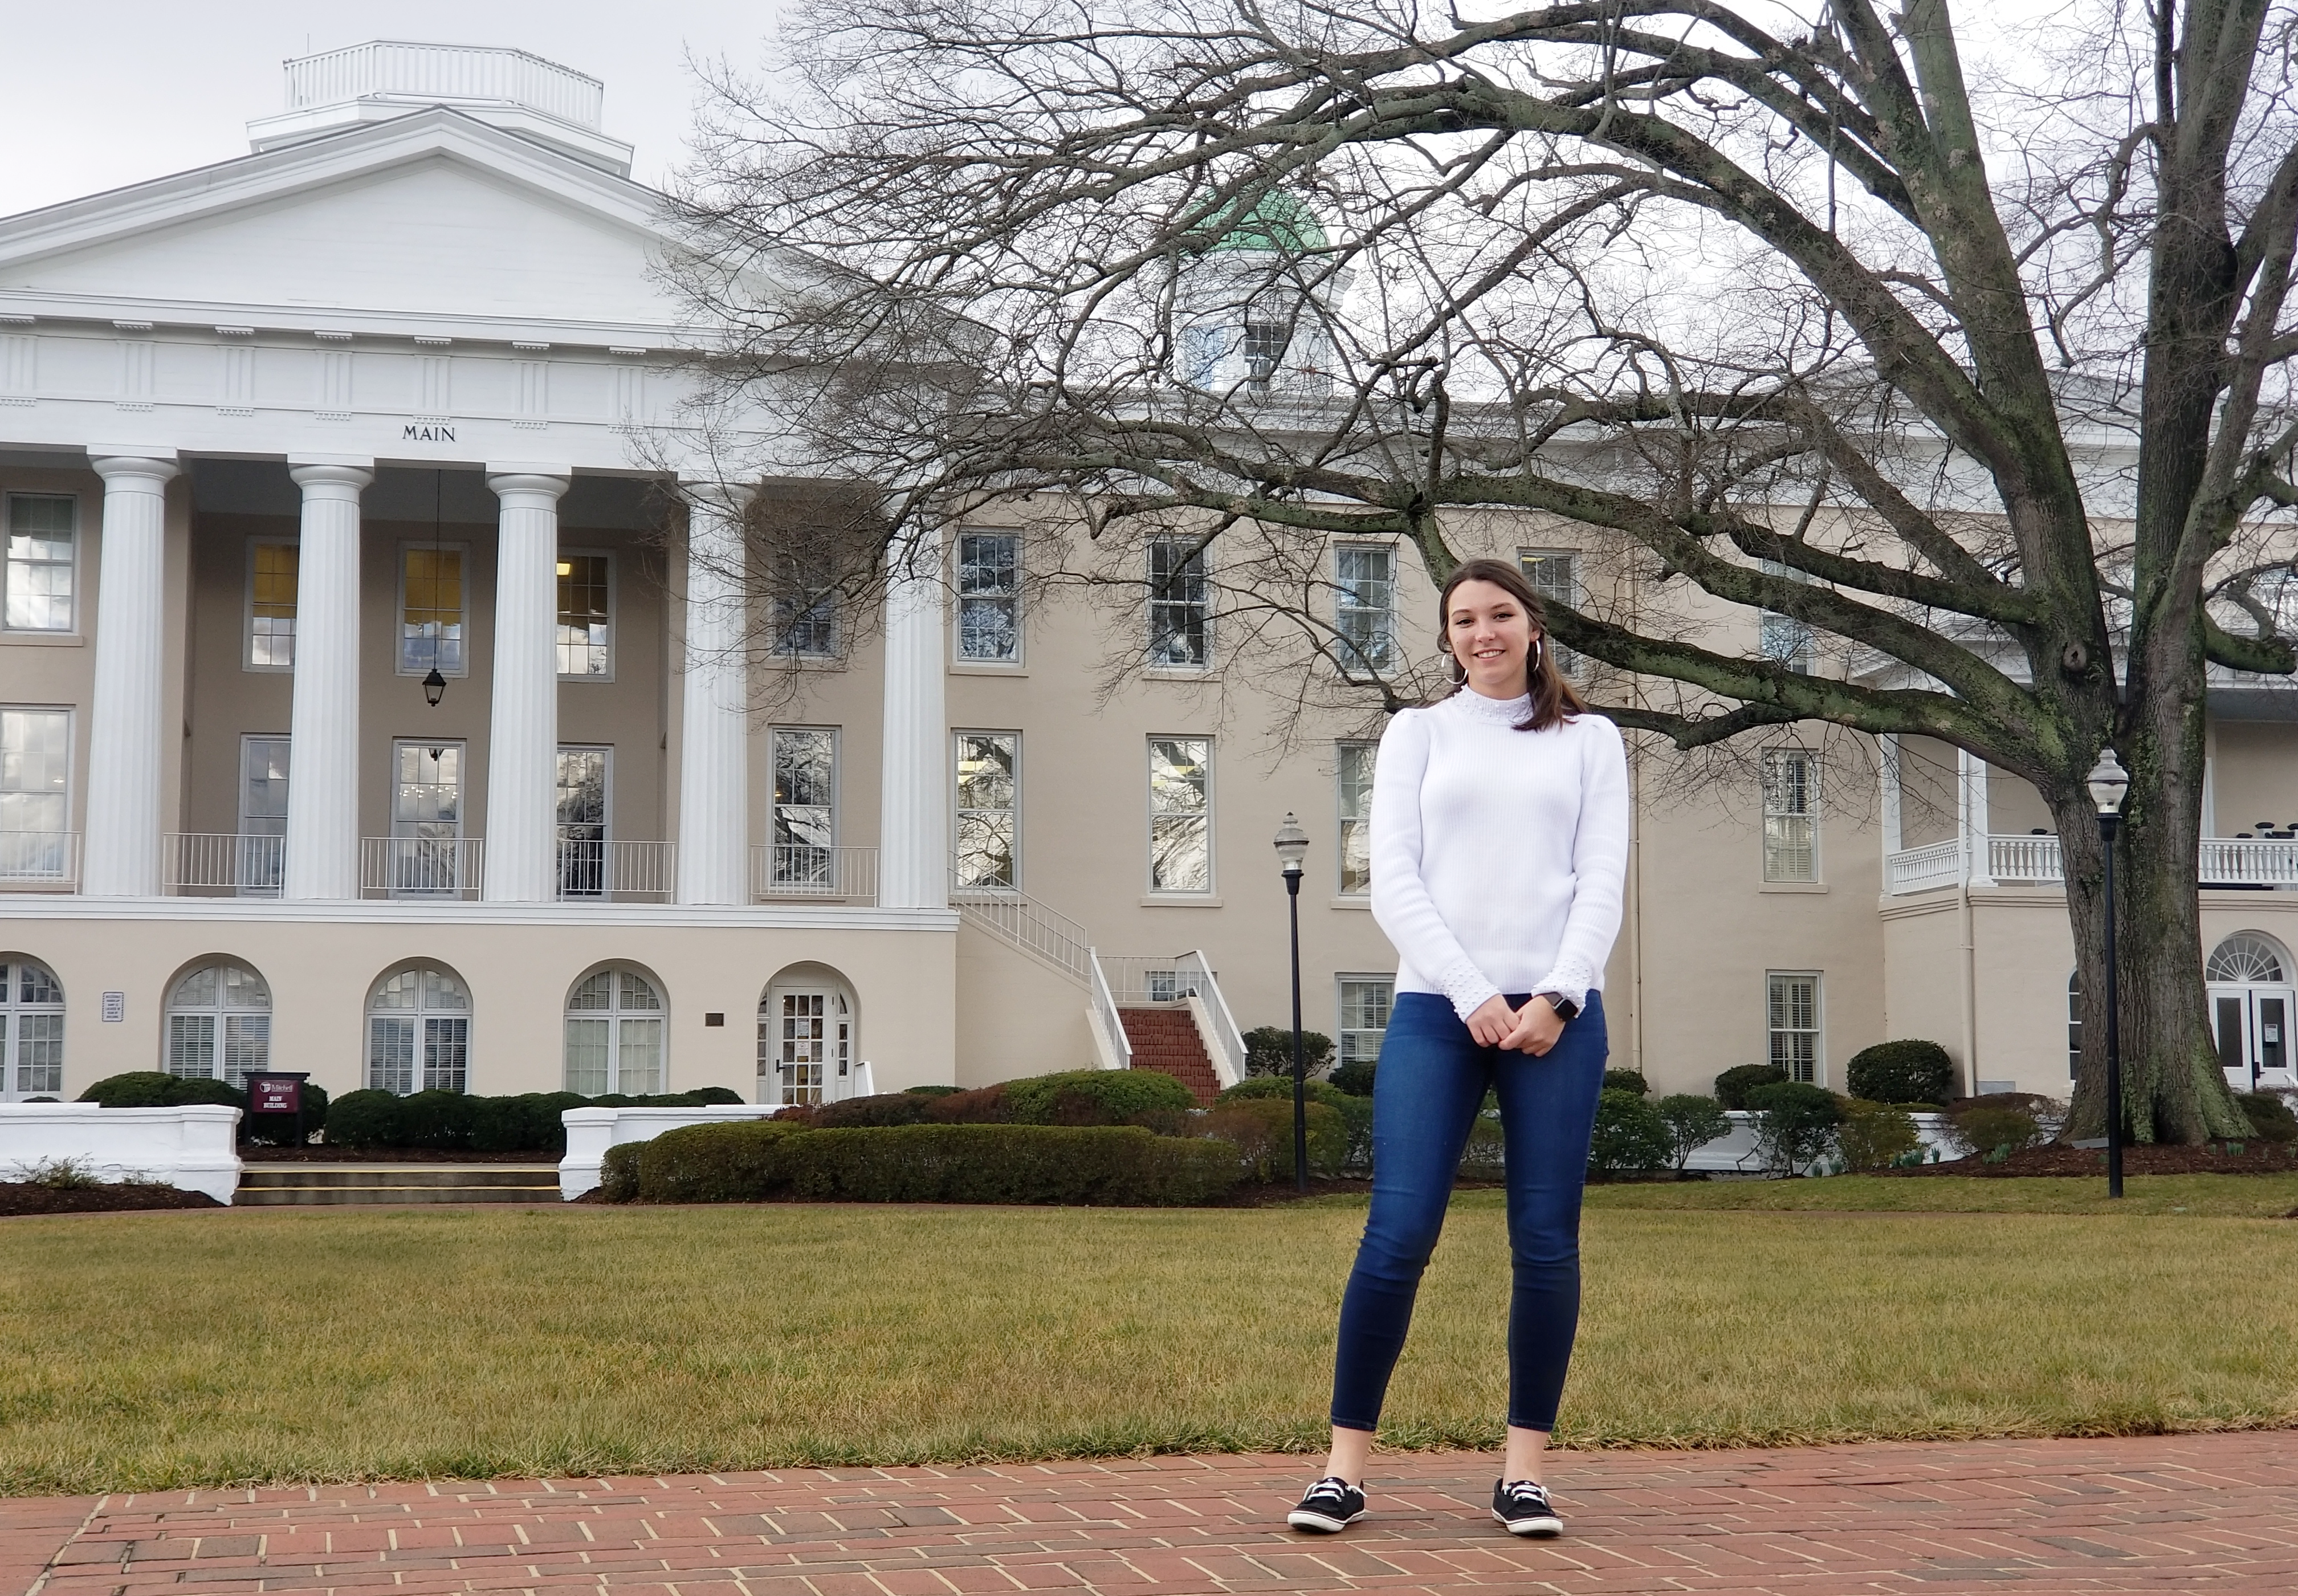 Brittany Welborn in front of Main Building on the historic Statesville Campus